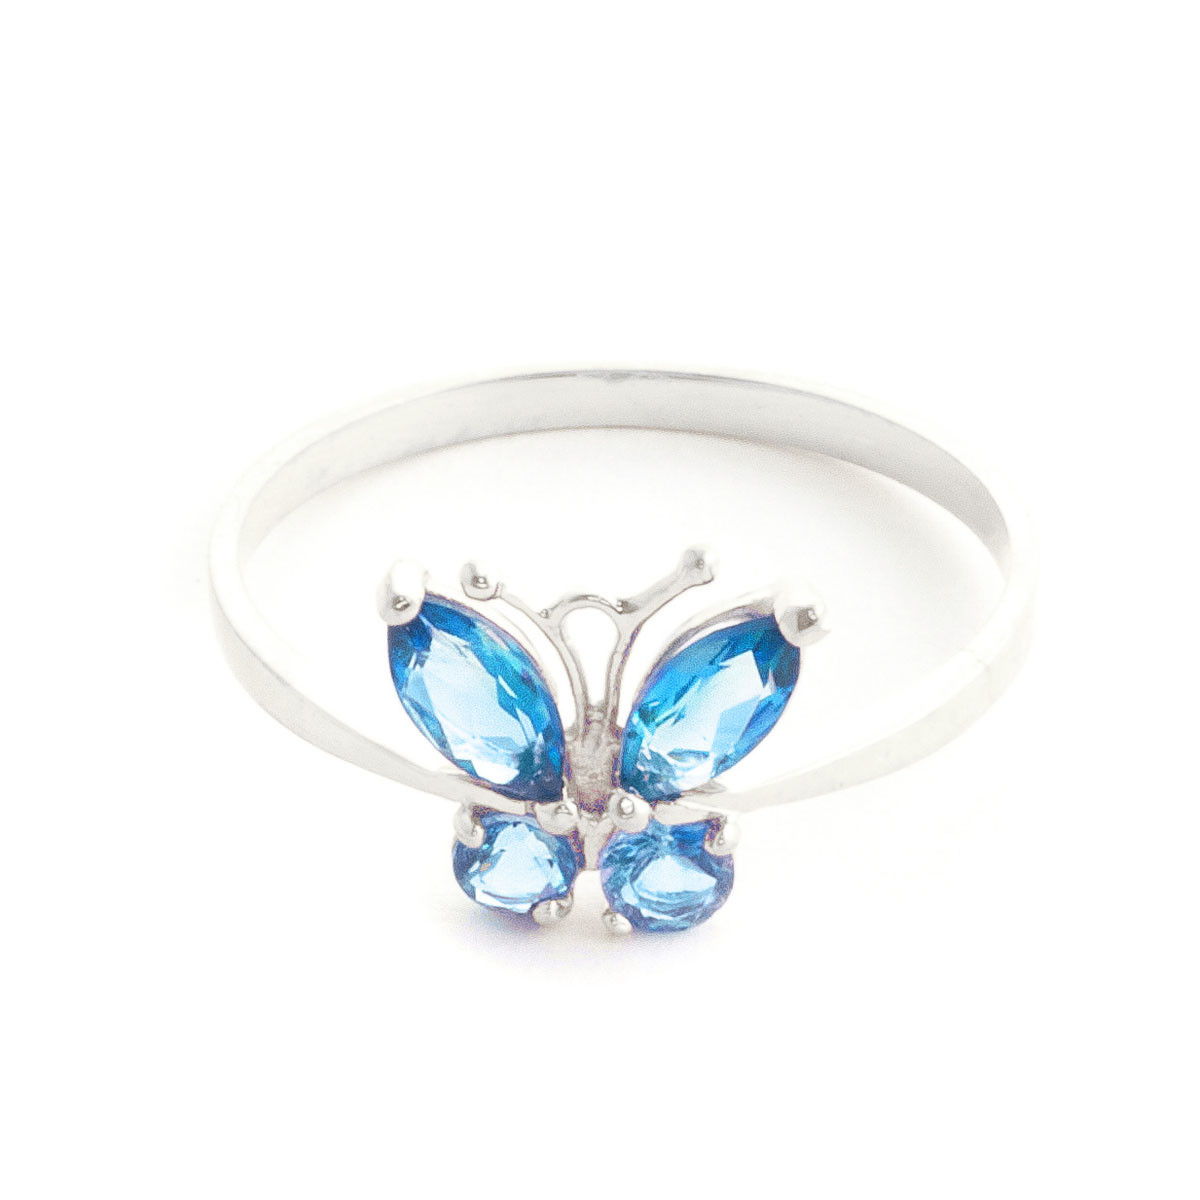 Blue Topaz Butterfly Ring 0.6 ctw in Sterling Silver